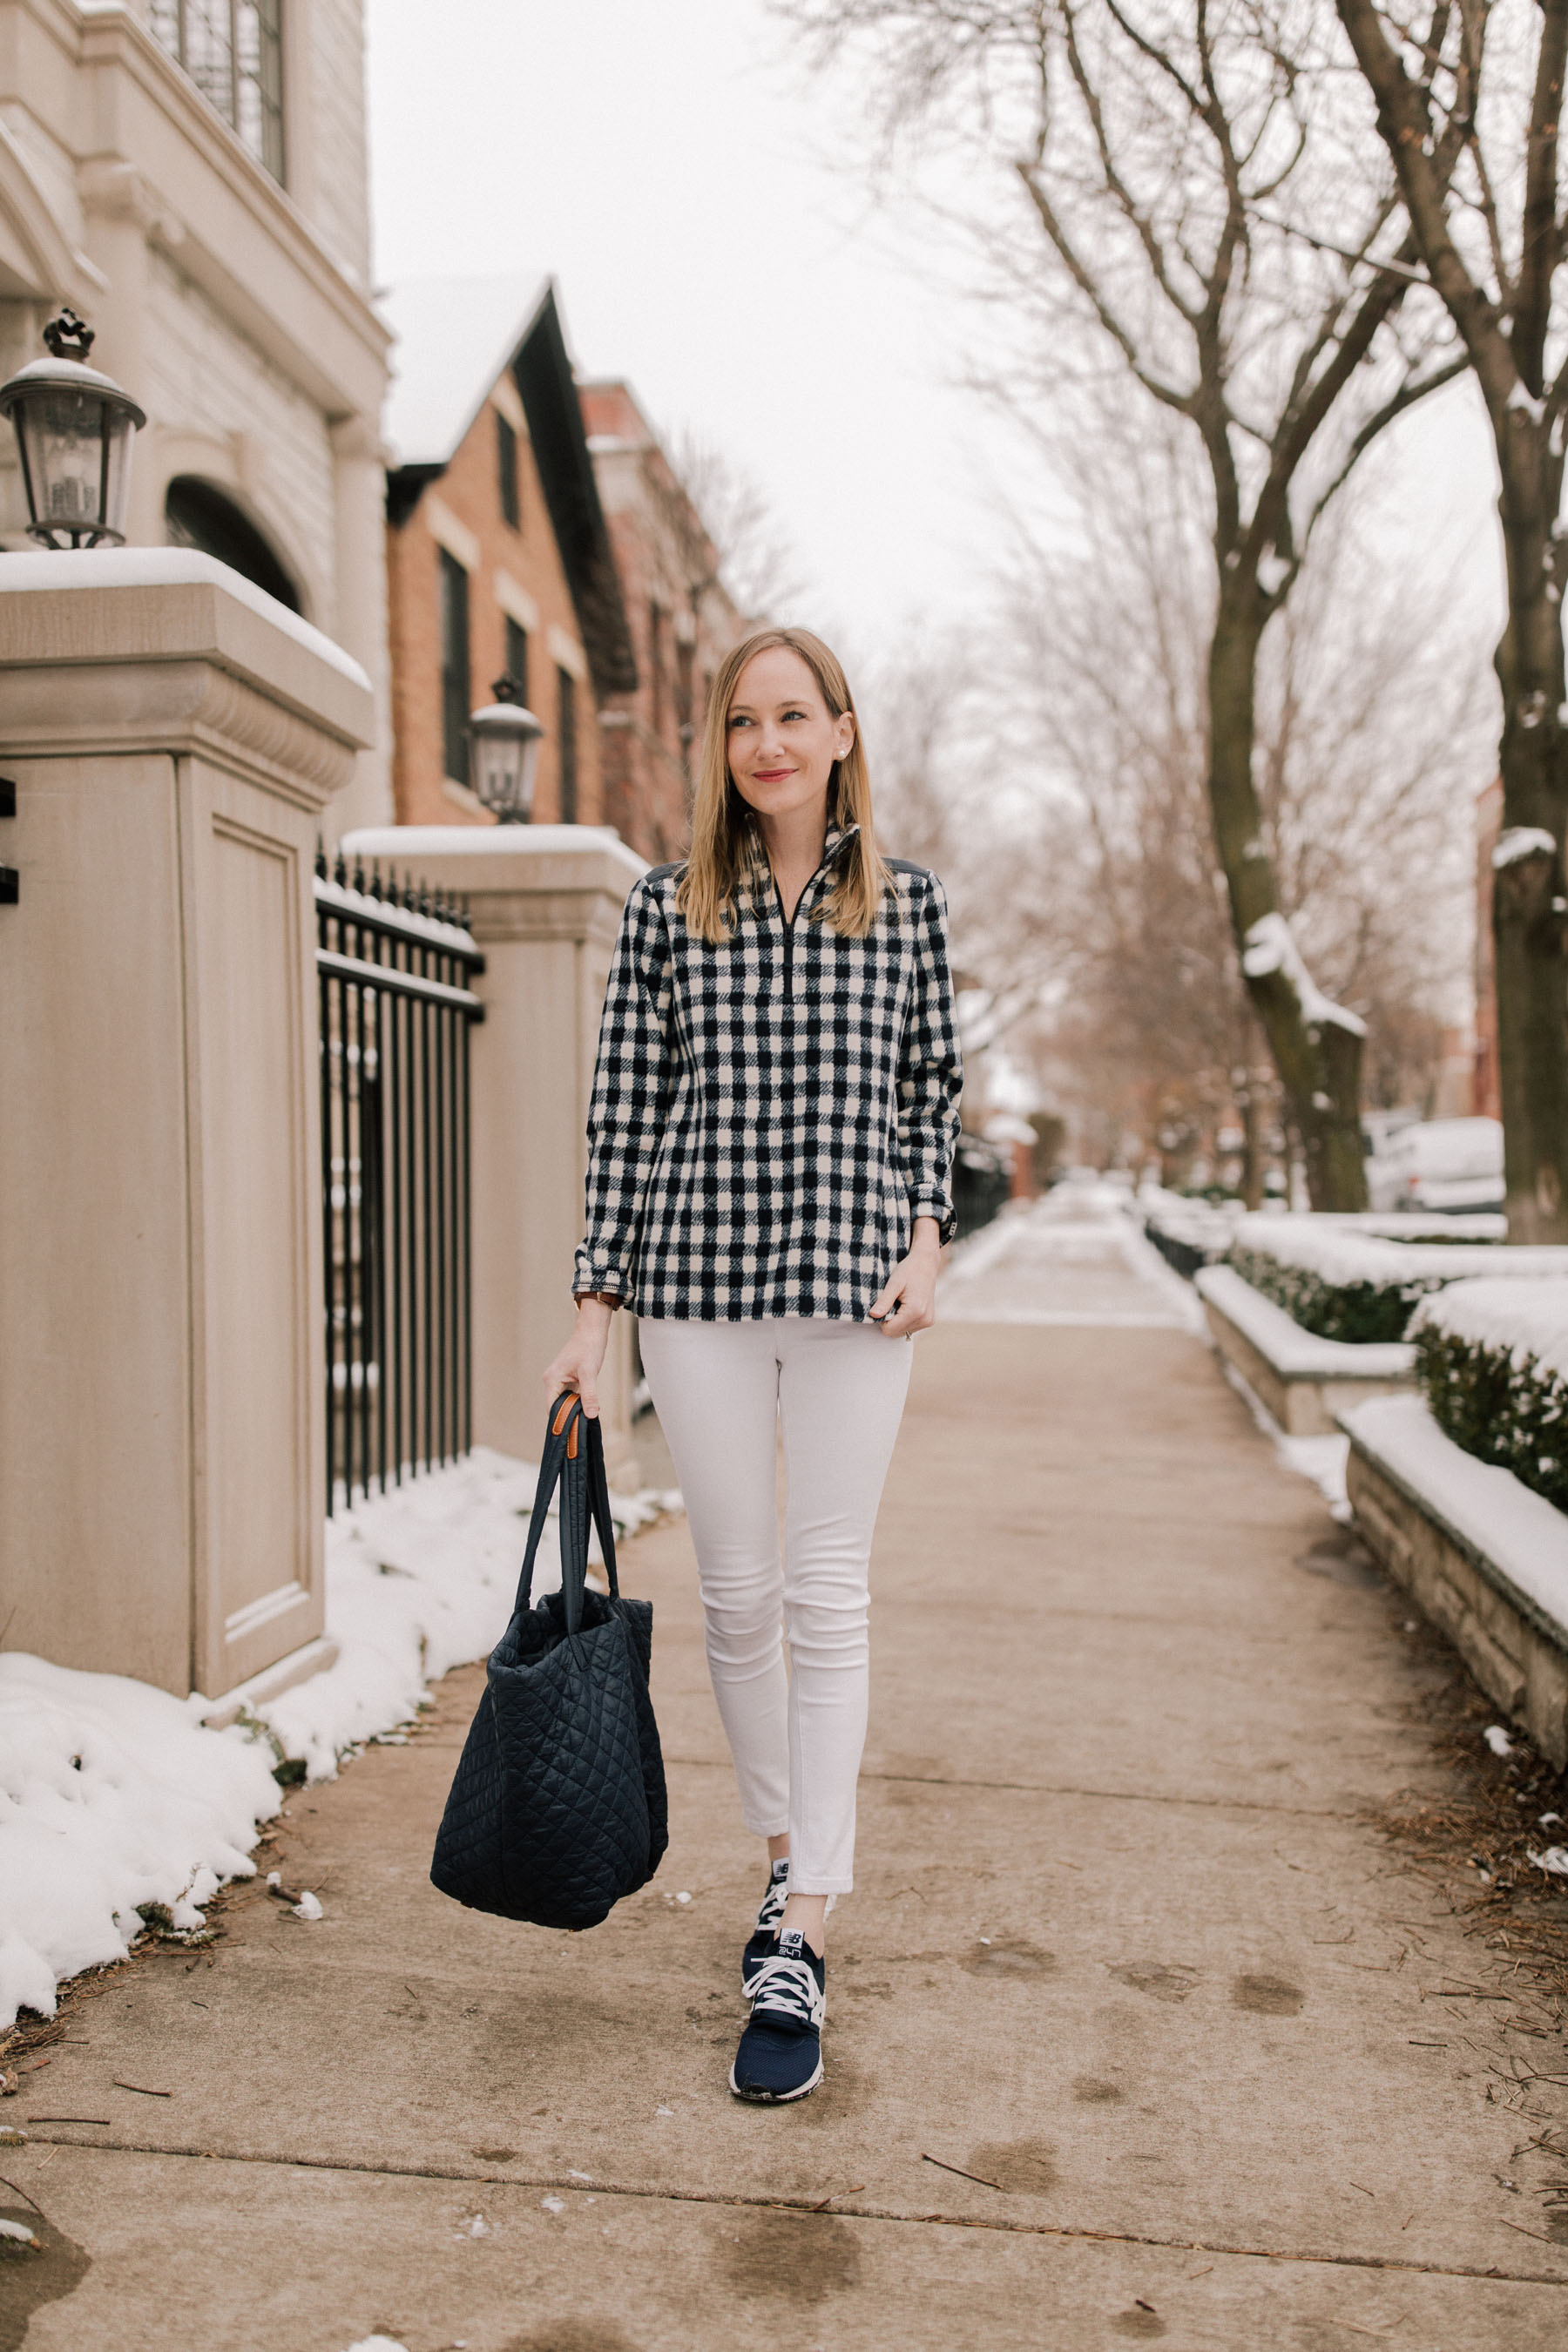 Gingham Travel Outfit Get These Gingham Outfits Details